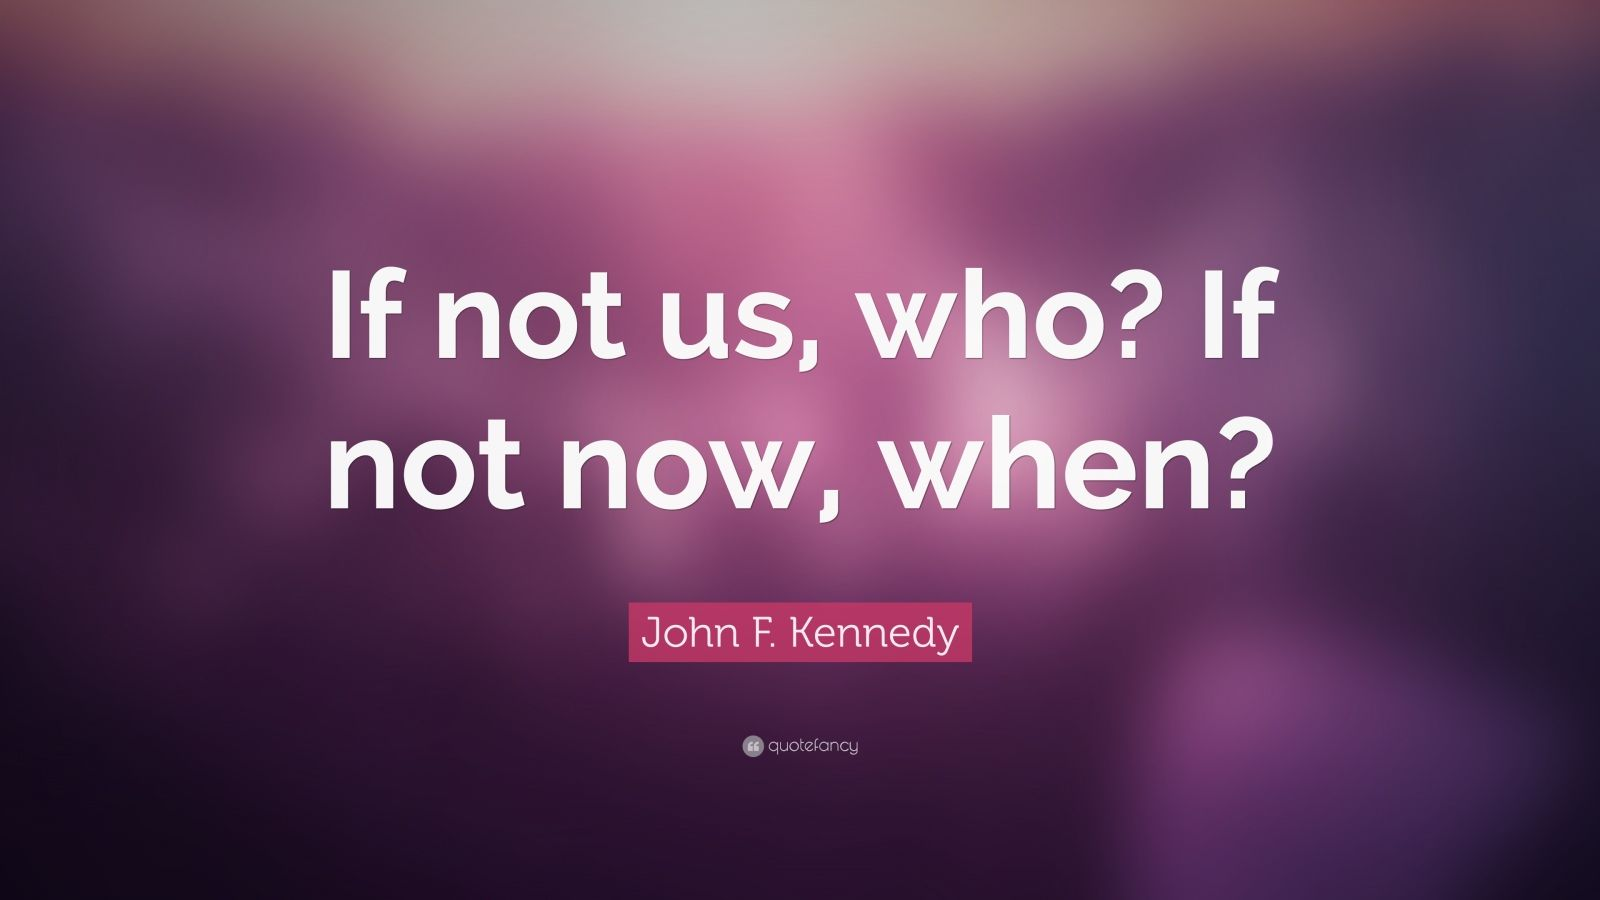 john f kennedy quote wallpapers - photo #30